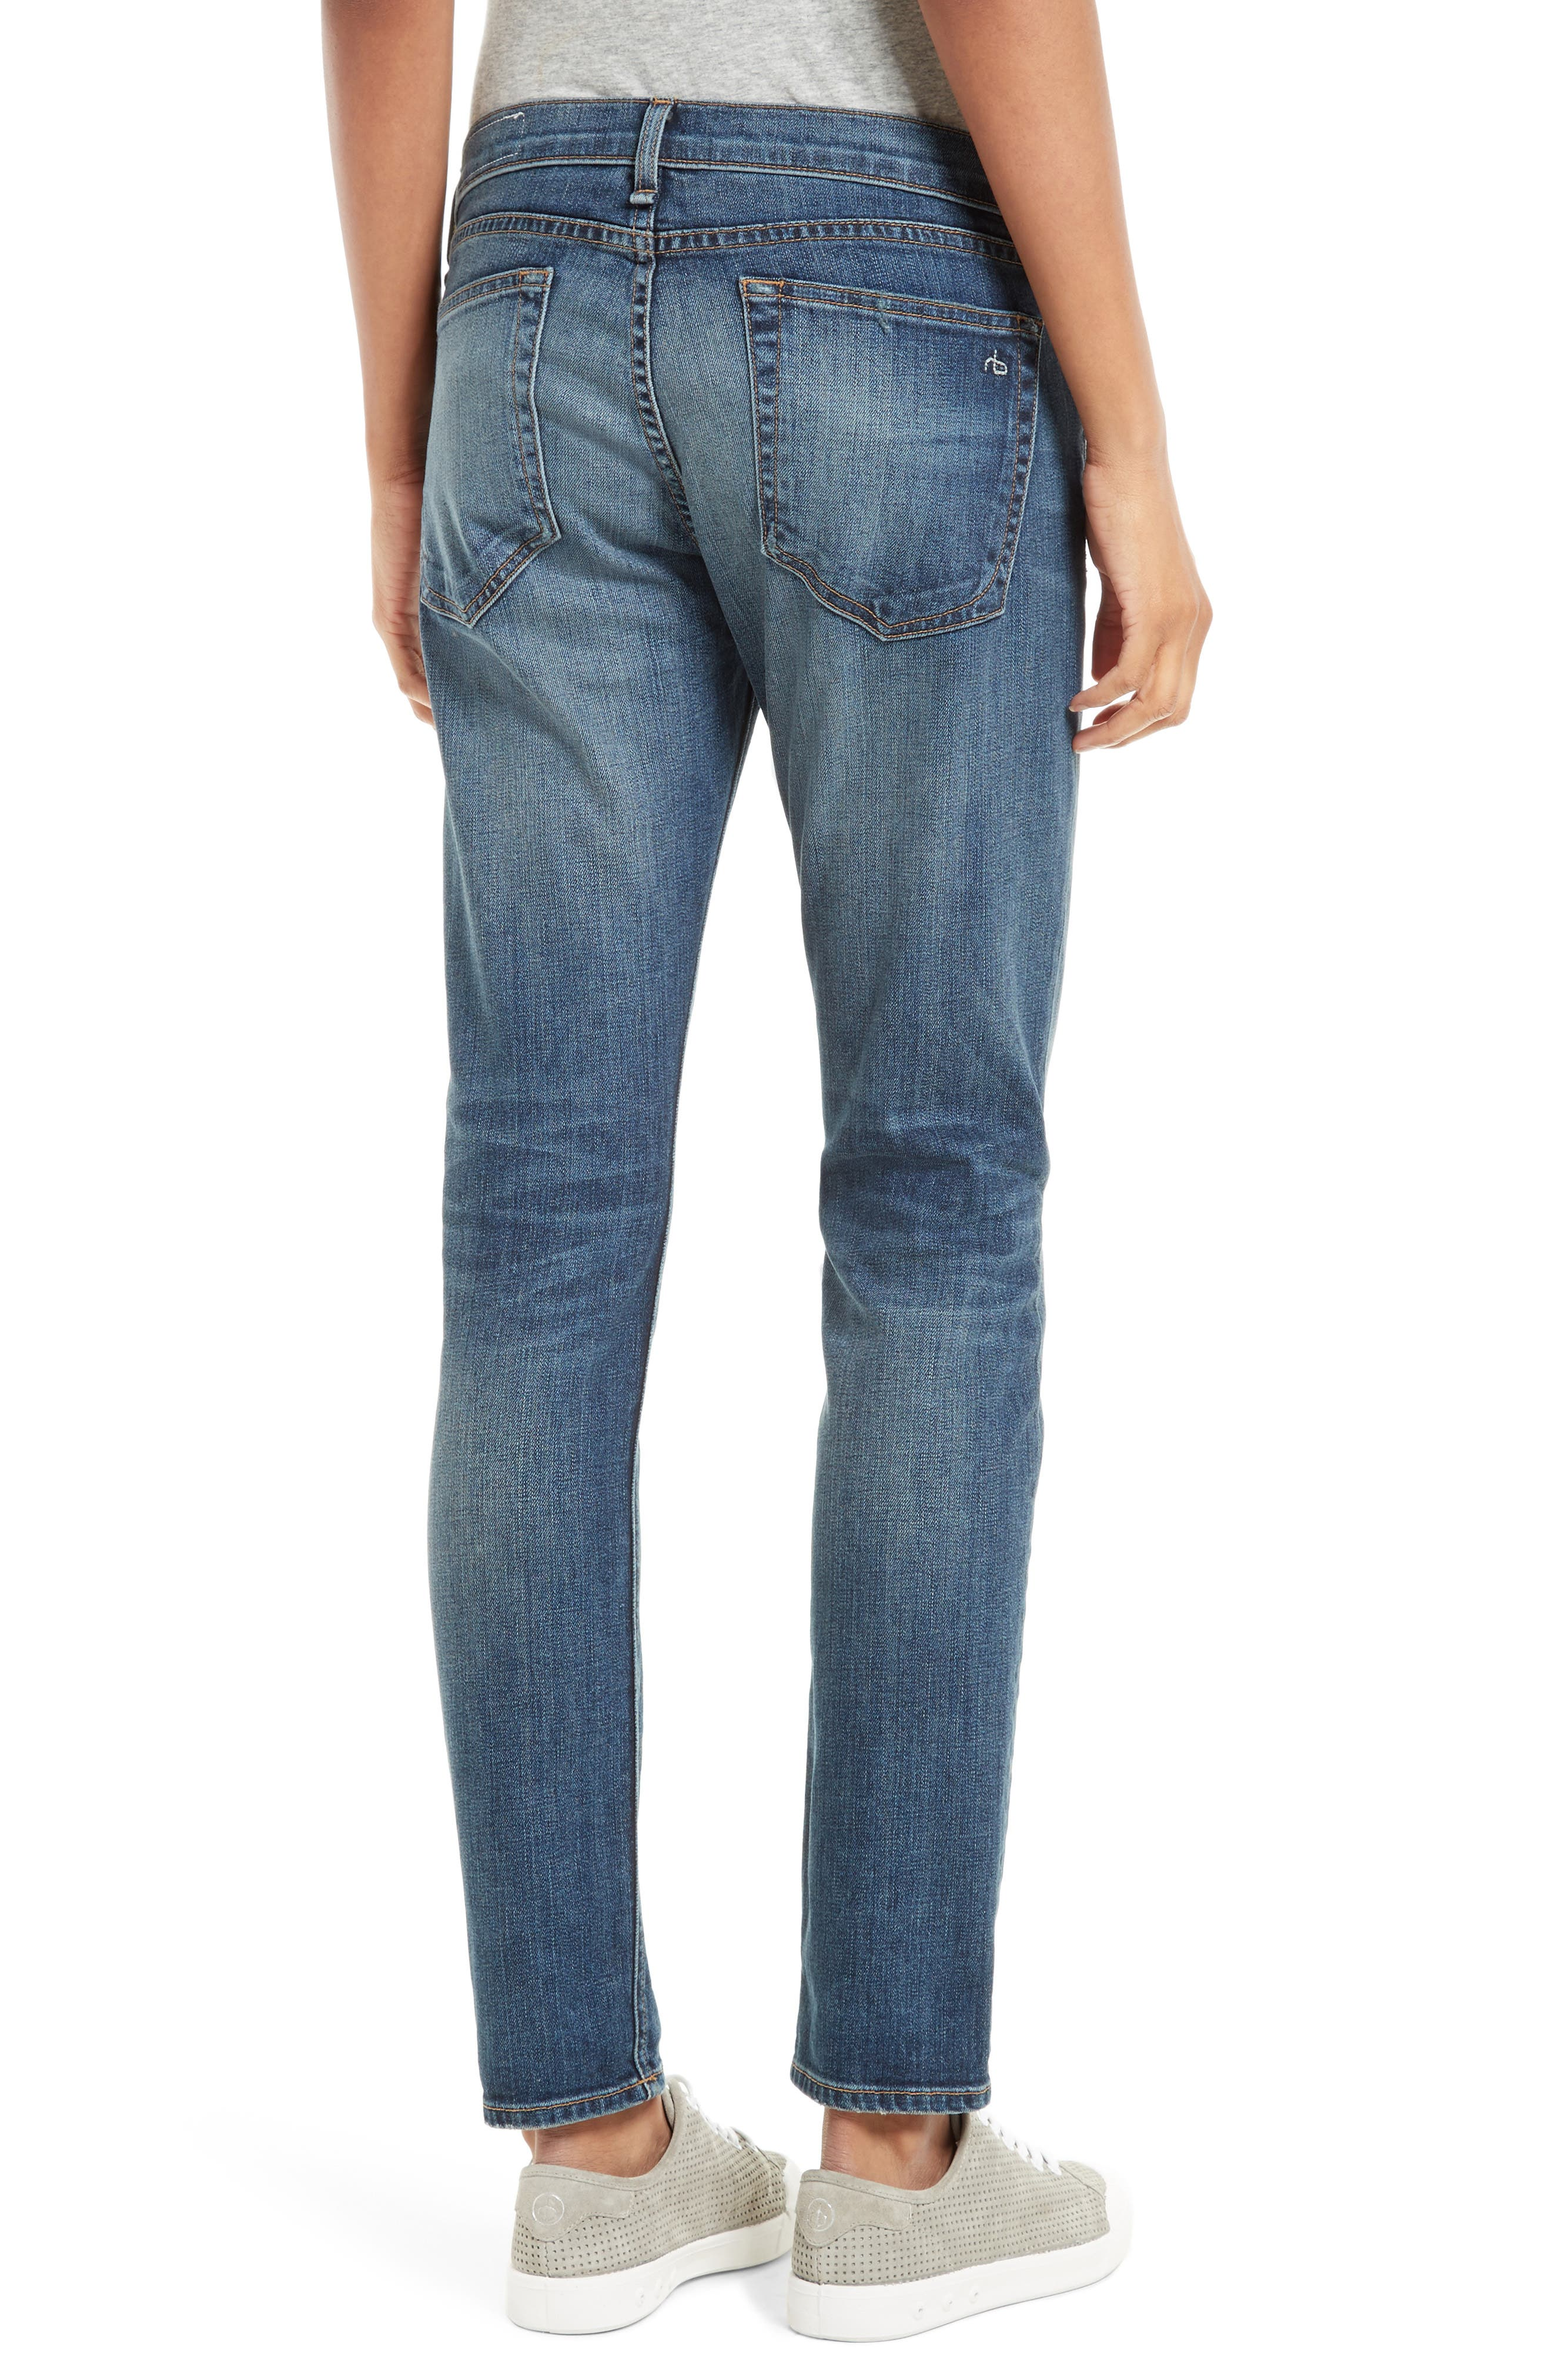 Alternate Image 2  - rag & bone/JEAN The Dre Slim Boyfriend Jeans (Bard)